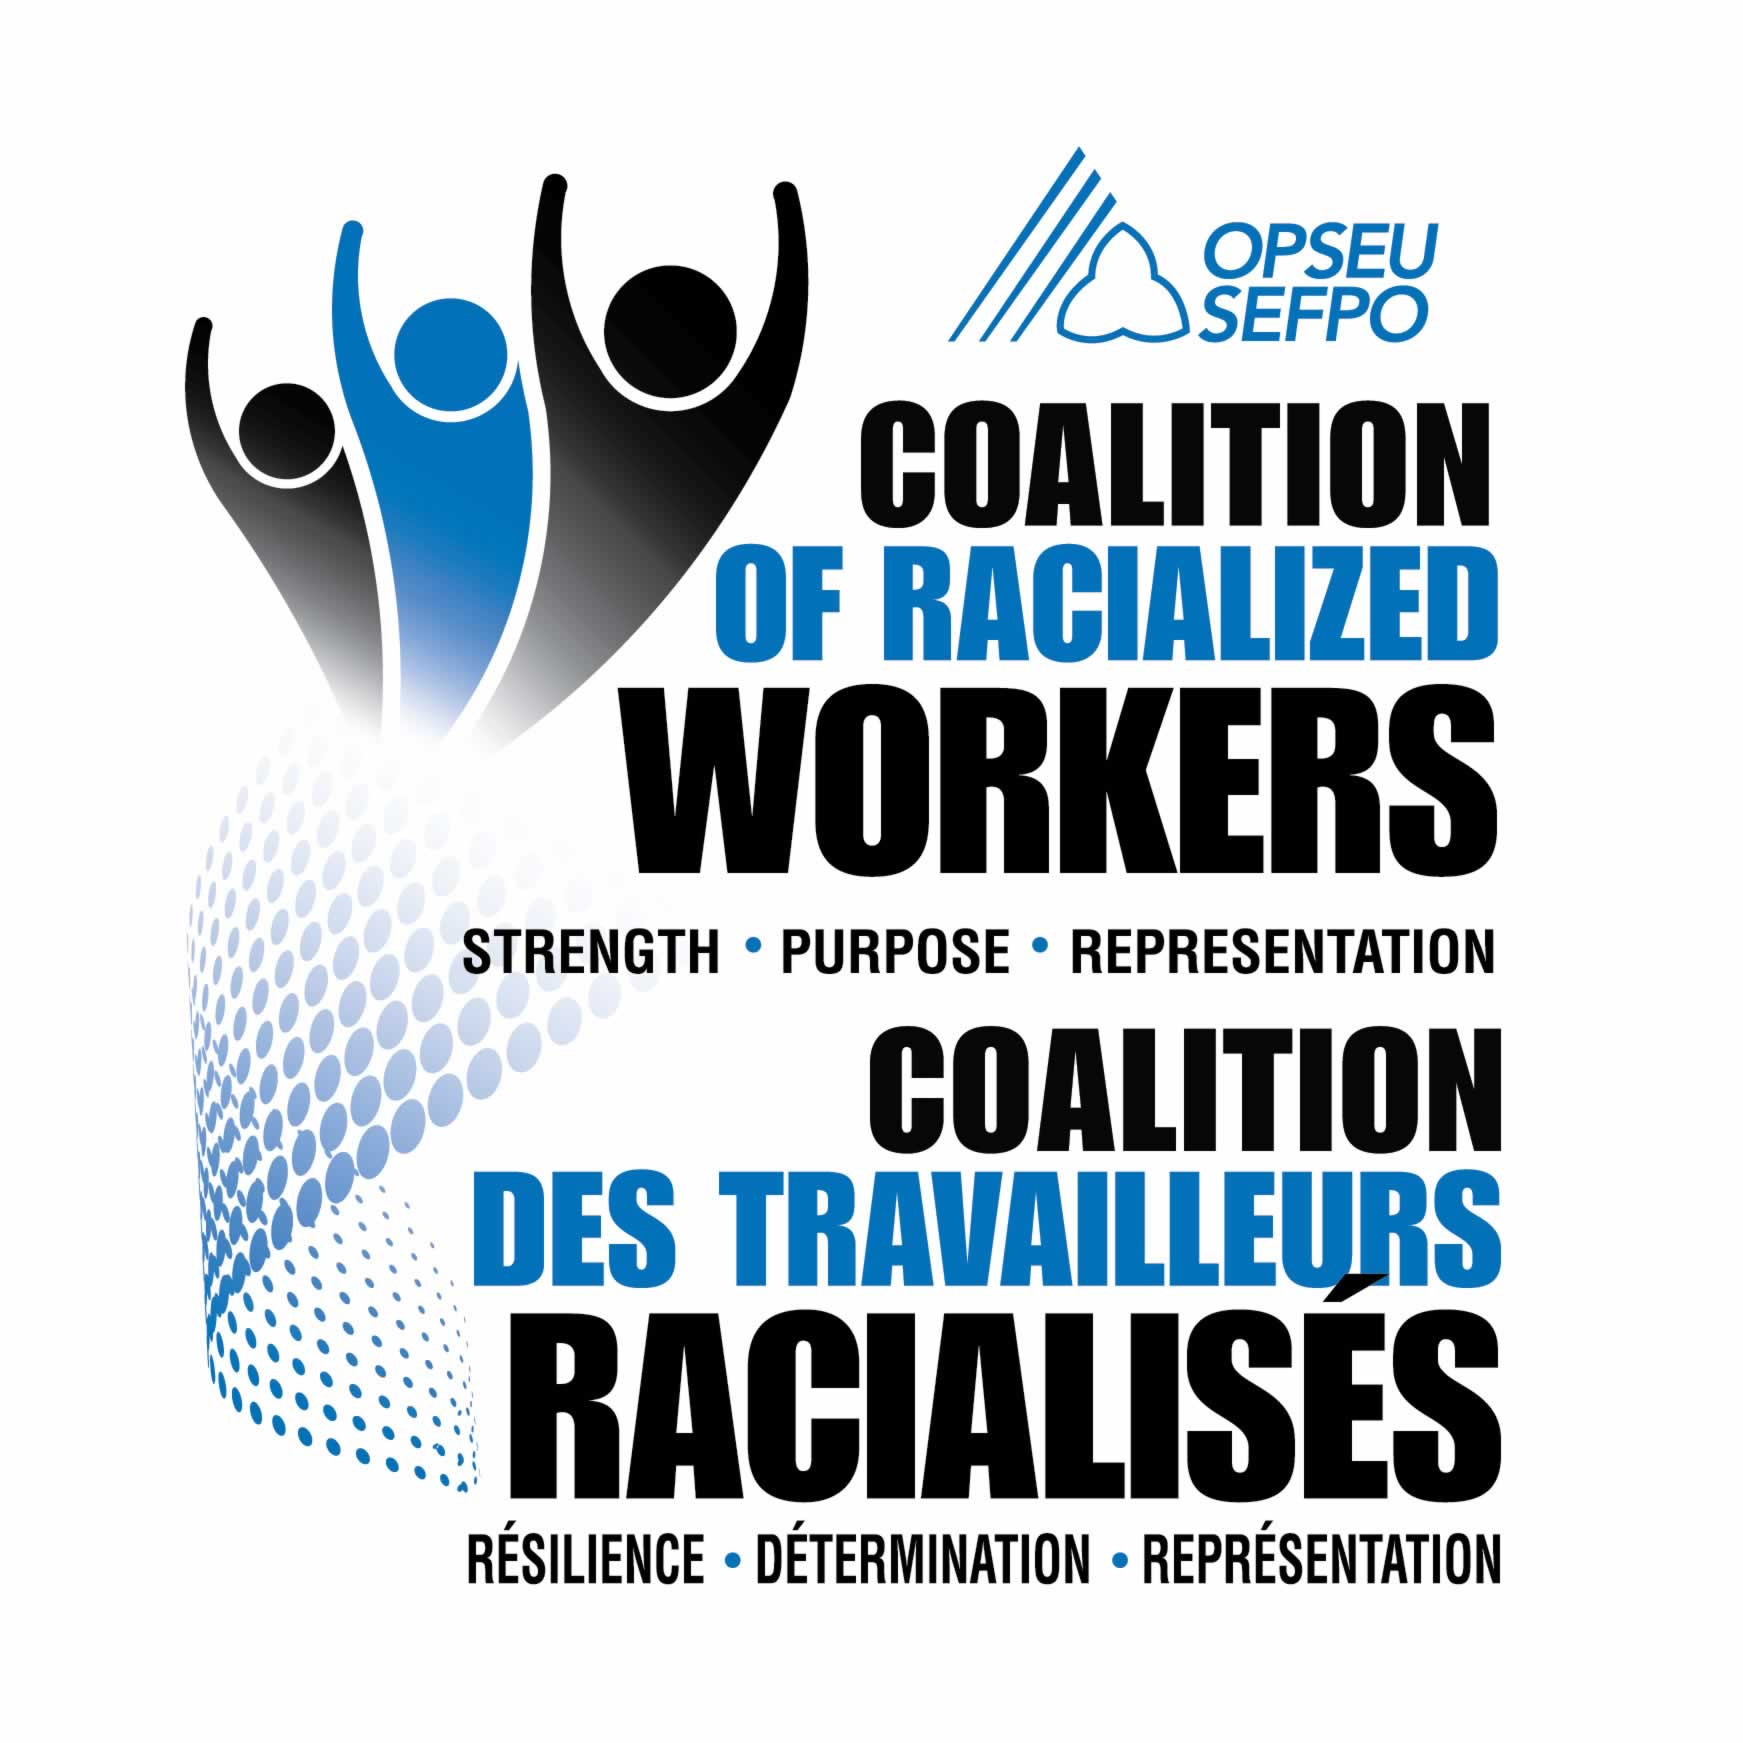 OPSEU Coalition of Racialized Workers, Strength Purpose Representation - SEFPO Coalition des travailleurs racialises, resilience determination representation